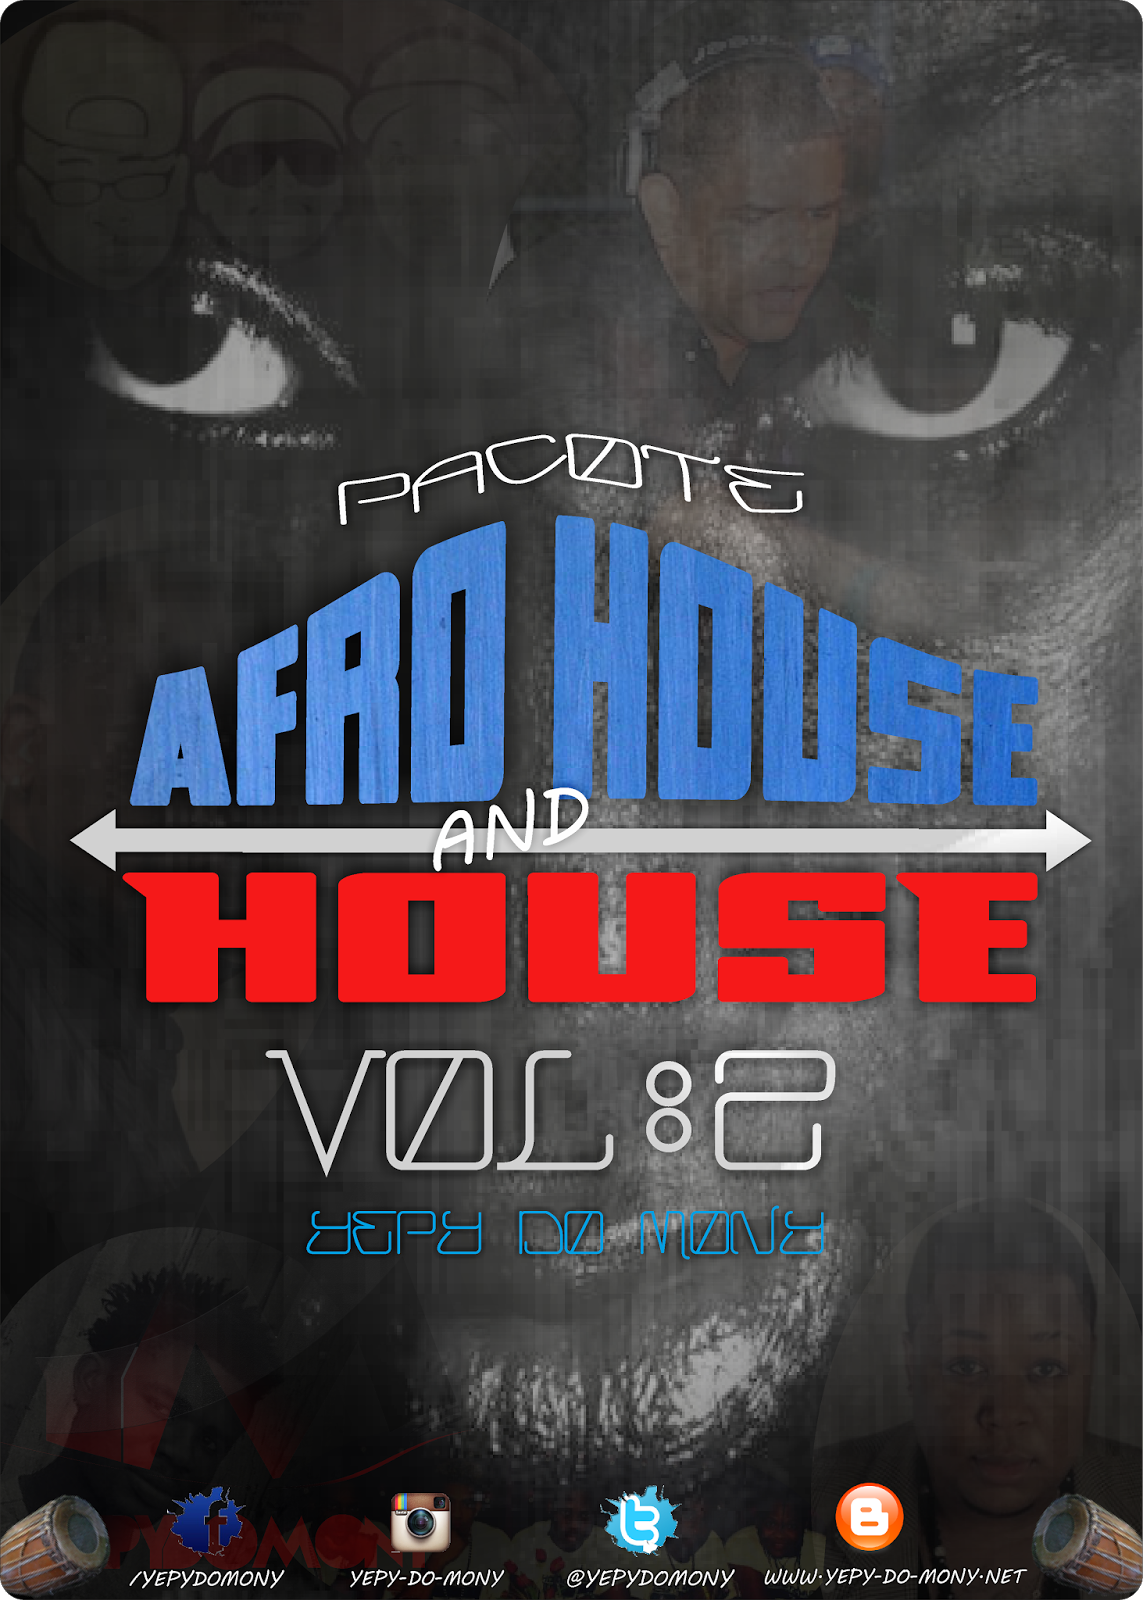 Pacote Afro house feat. House Vol.2